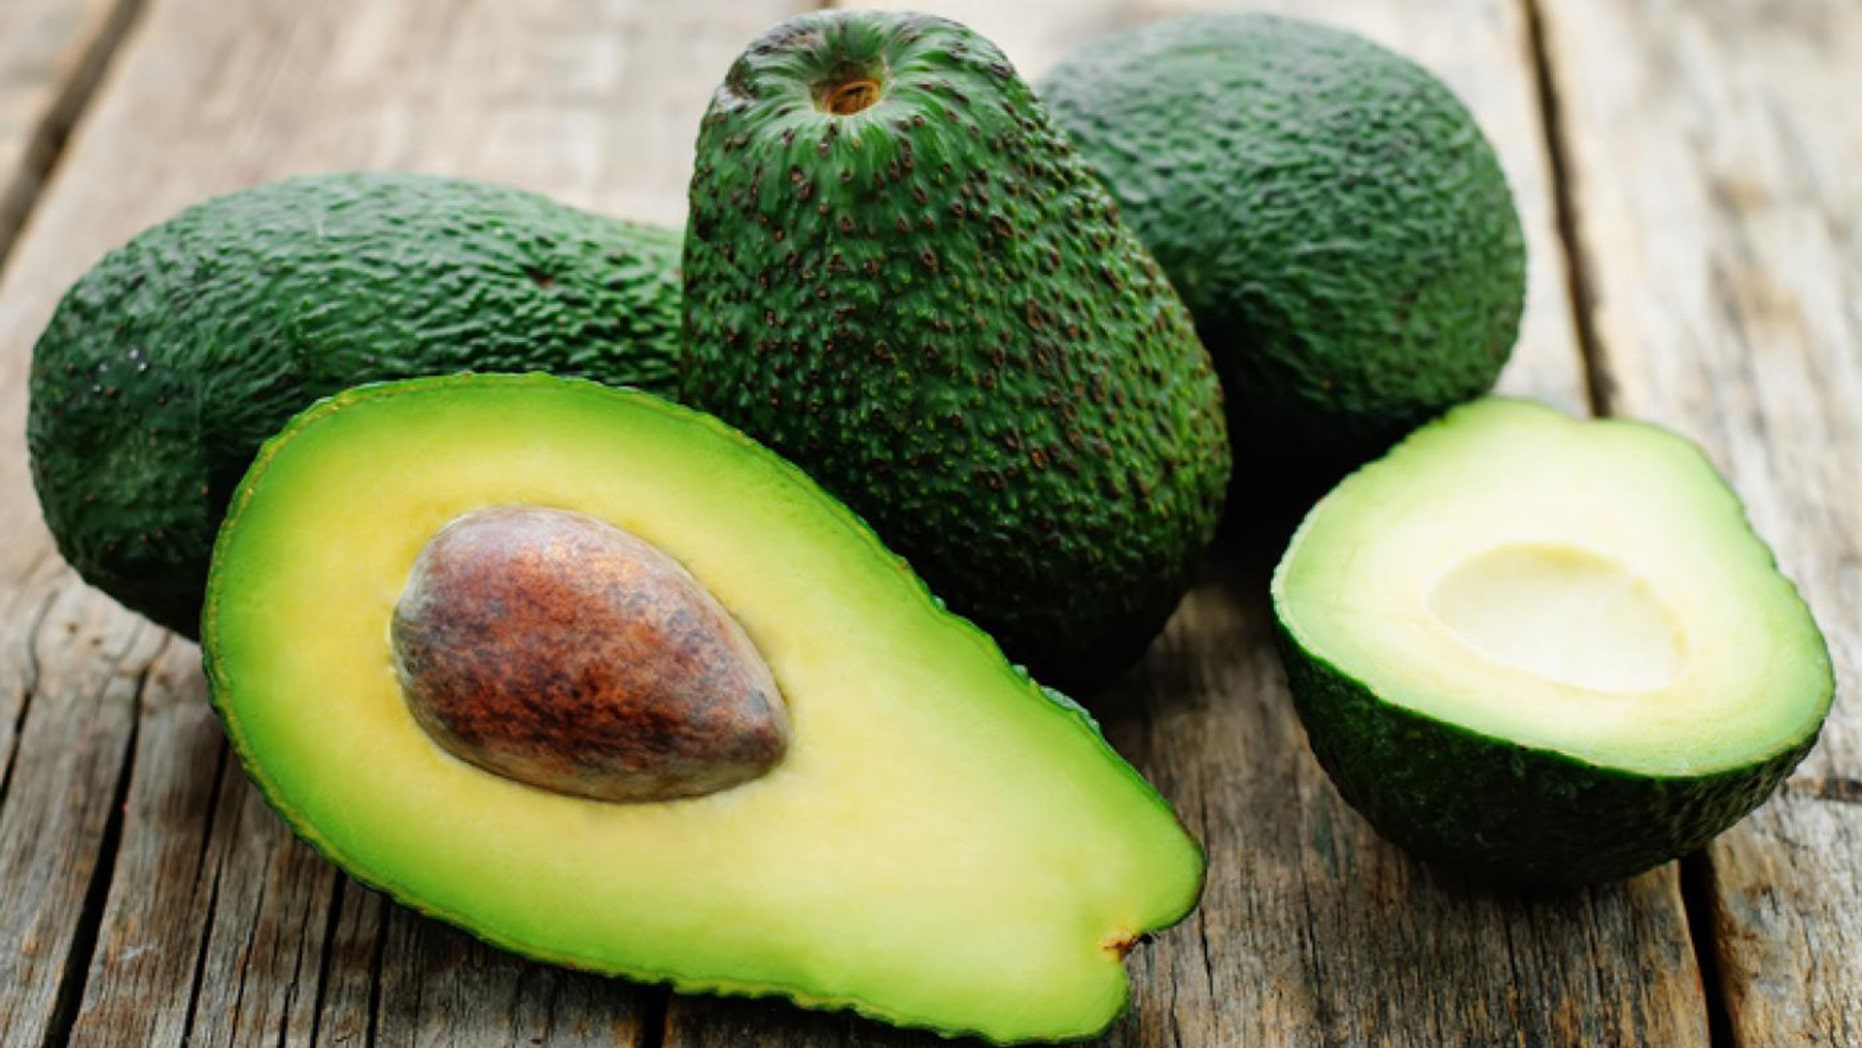 Avocados might not be vegan due to a practice called migratory beekeeping.